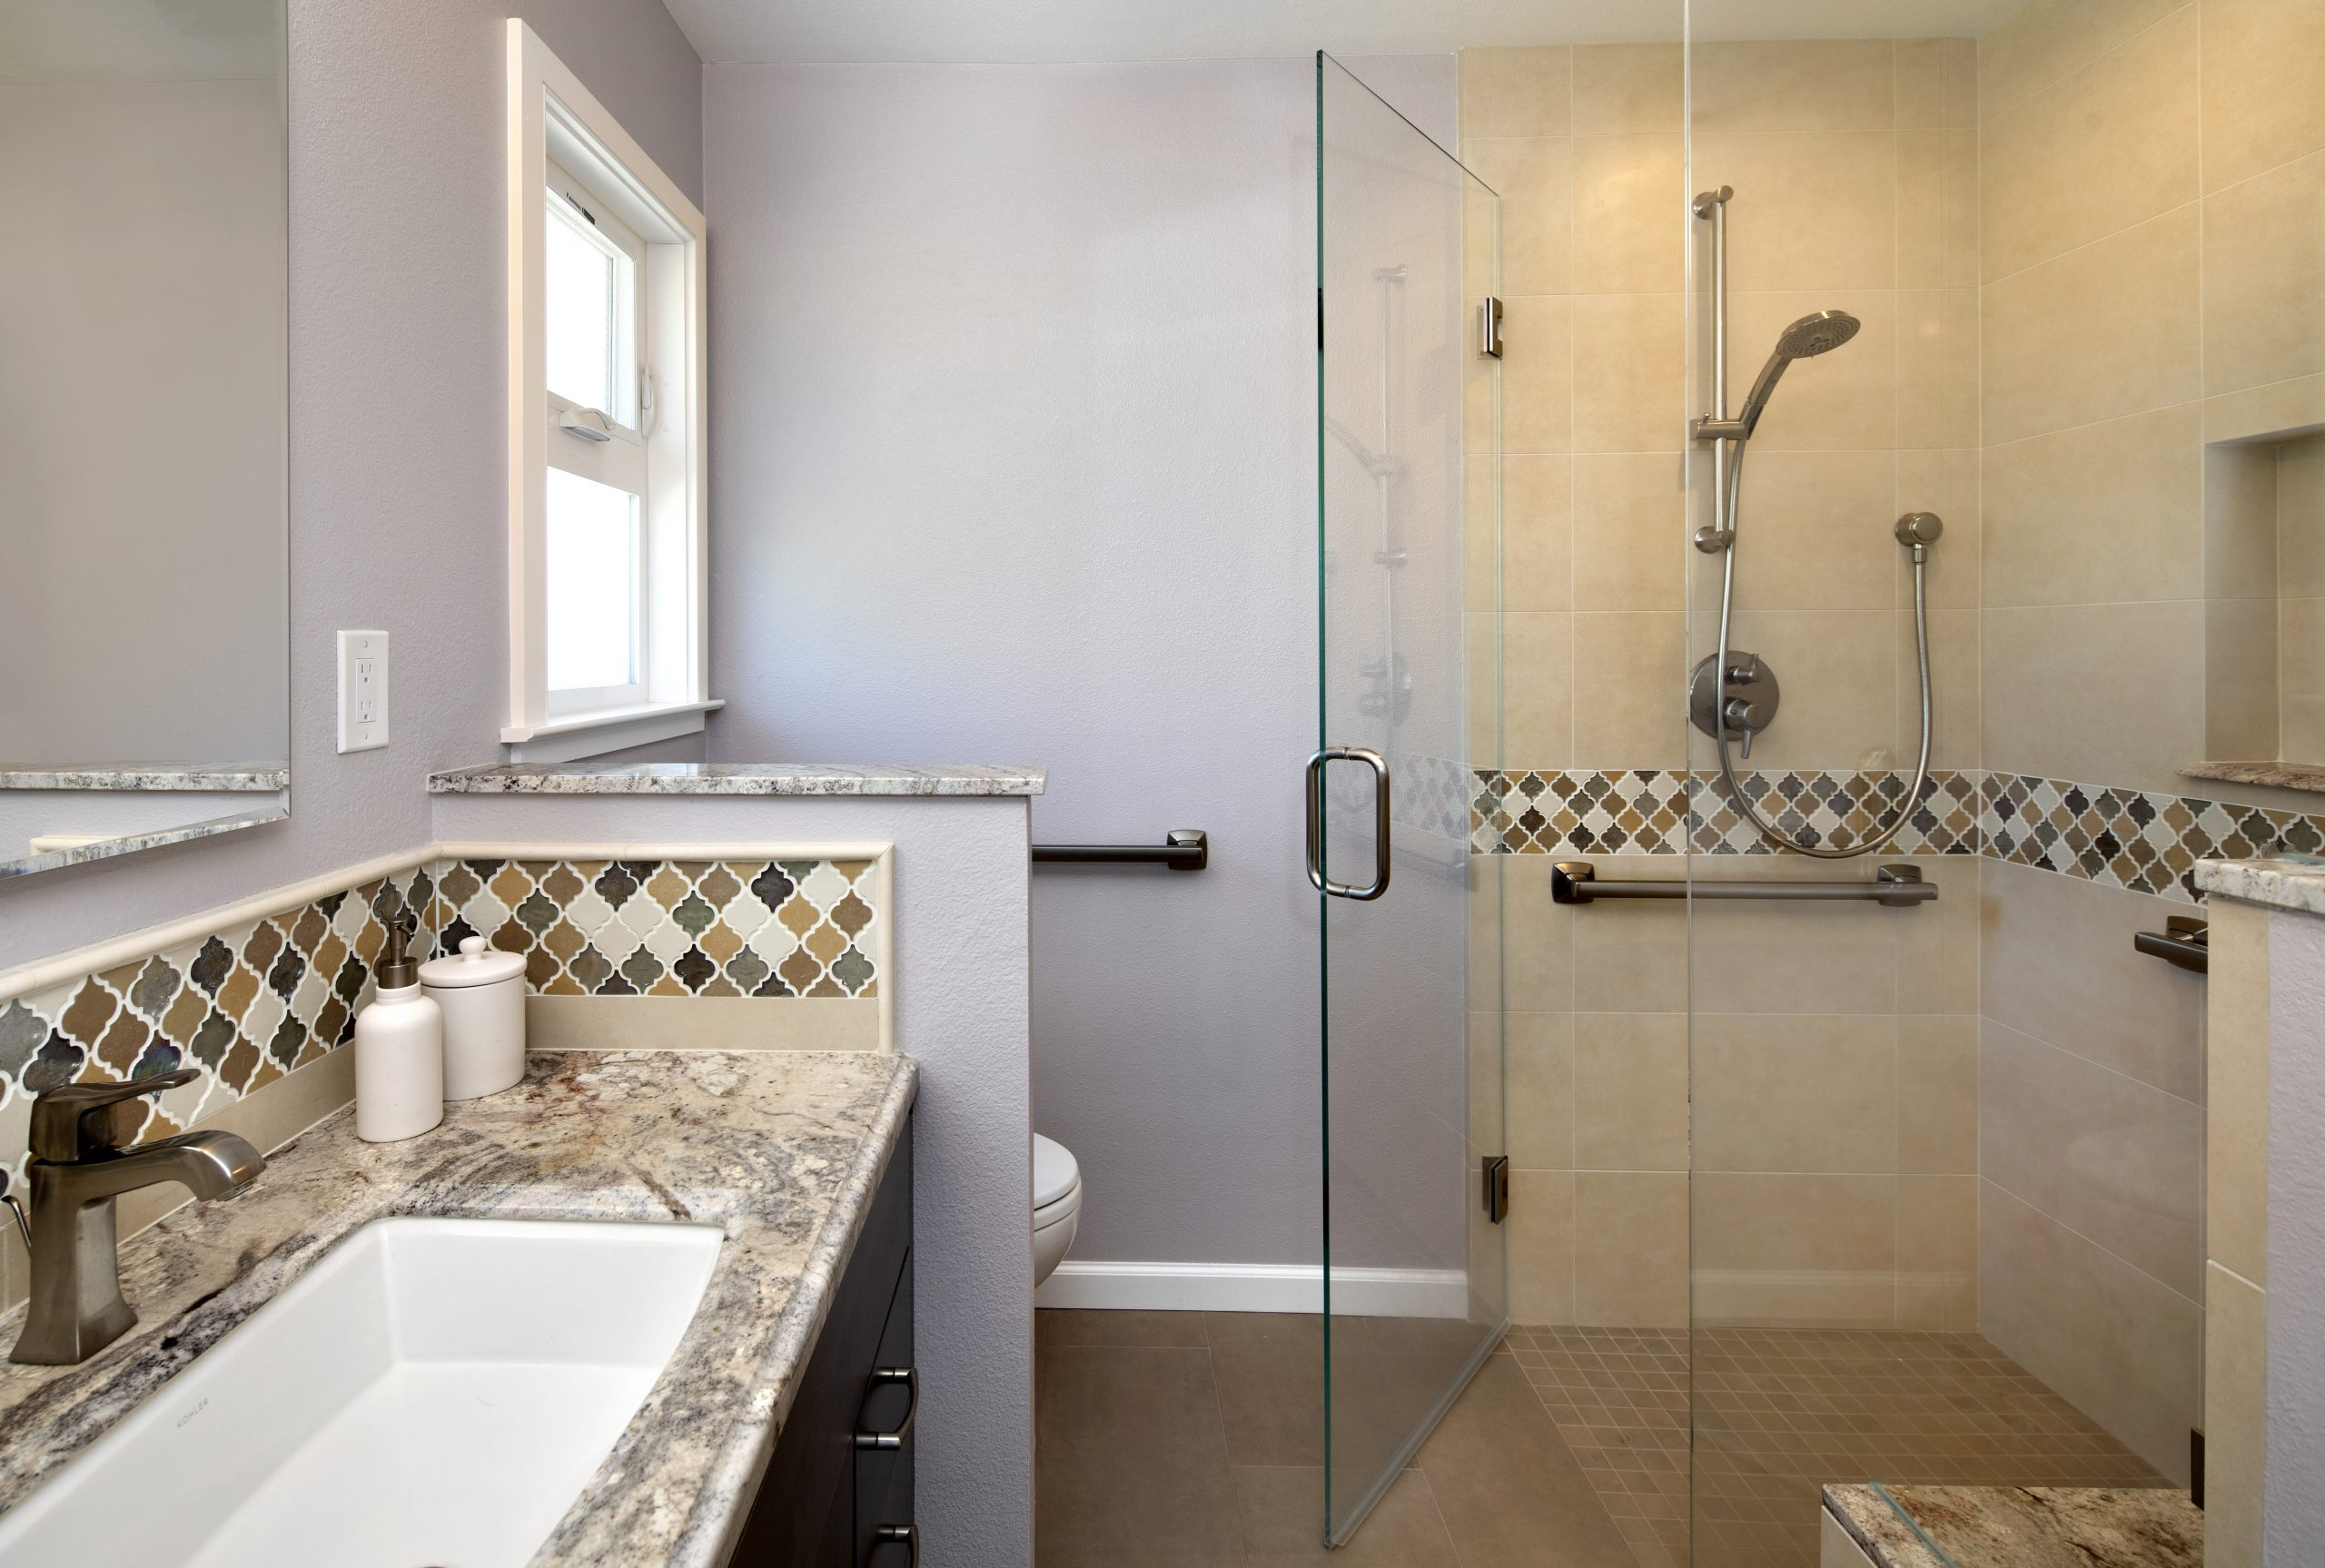 A full glass shower with decorative tile walls.